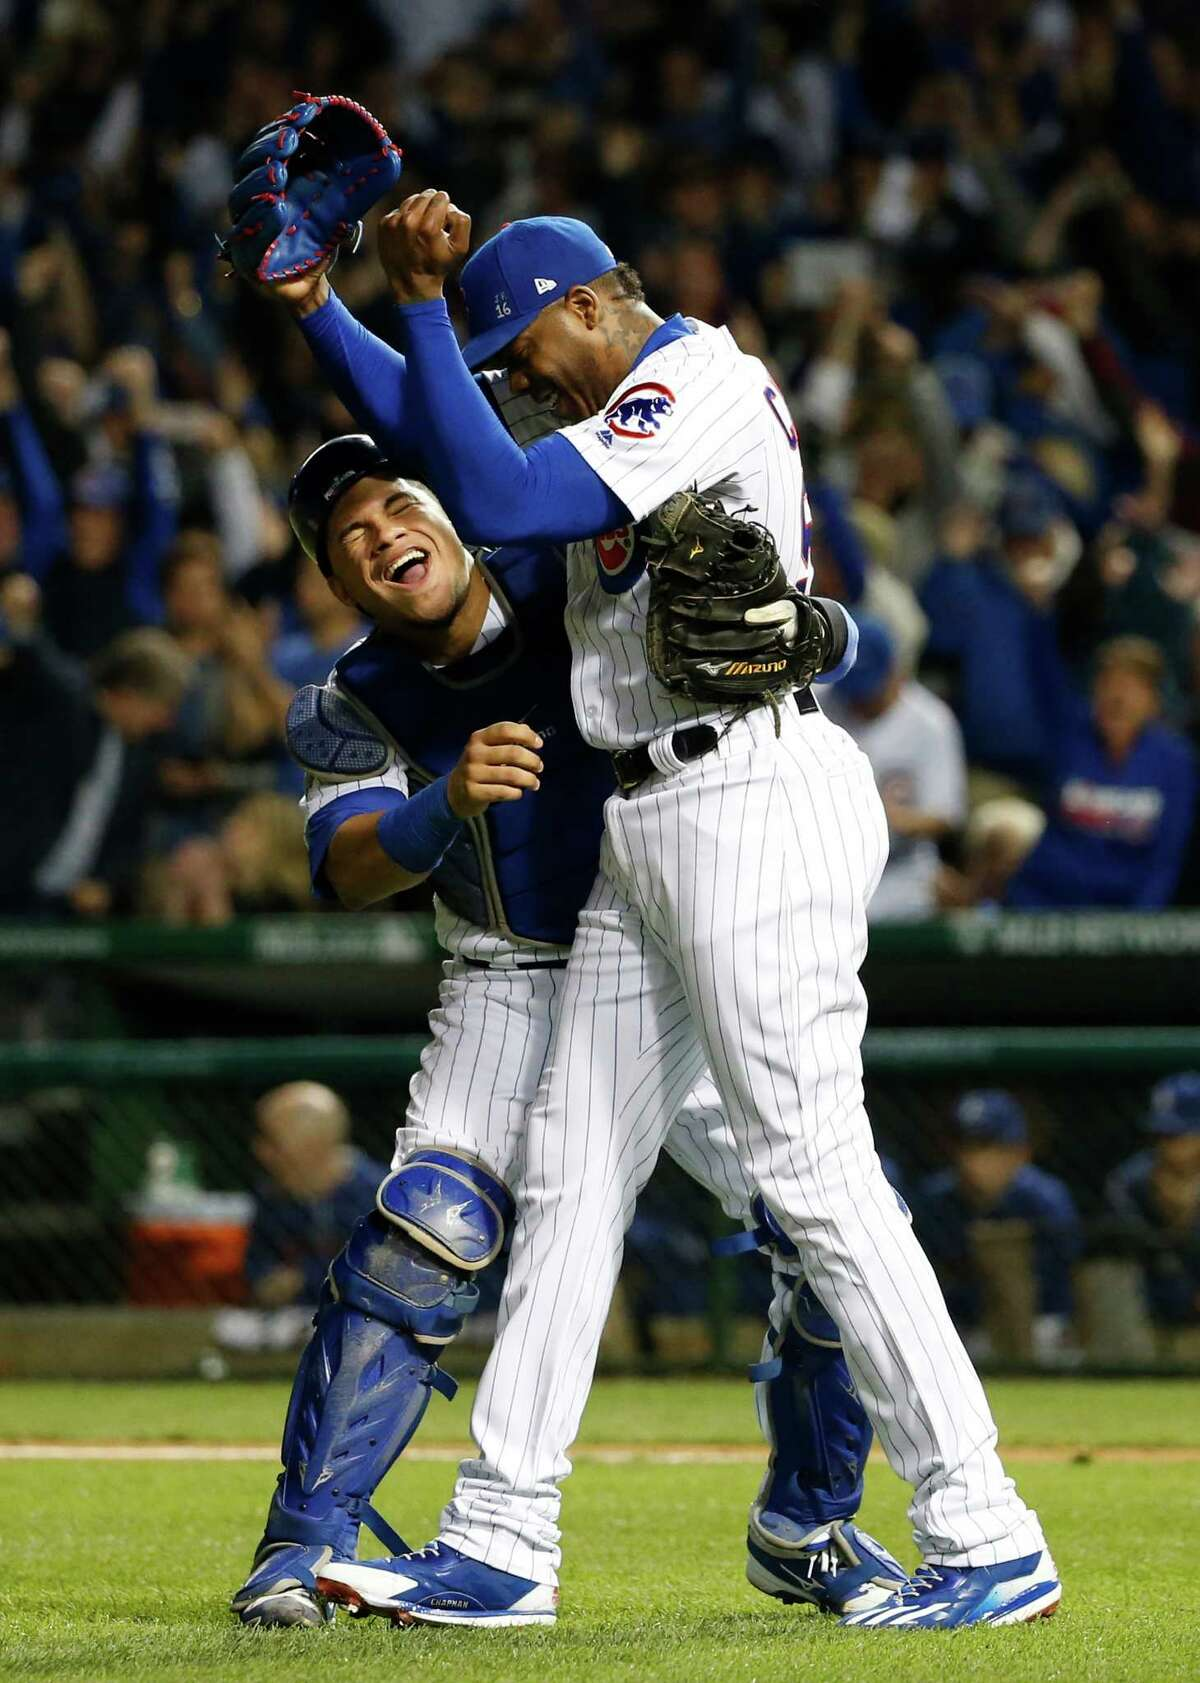 Chicago Cubs relief pitcher Aroldis Chapman (54) and catcher Willson Contreras (40) celebrate after Game 6 of the National League baseball championship series against the Los Angeles Dodgers, Saturday, Oct. 22, 2016, in Chicago. The Cubs won 5-0 to win the series and advance to the World Series against the Cleveland Indians. (AP Photo/Nam Y. Huh) ORG XMIT: NLCS224